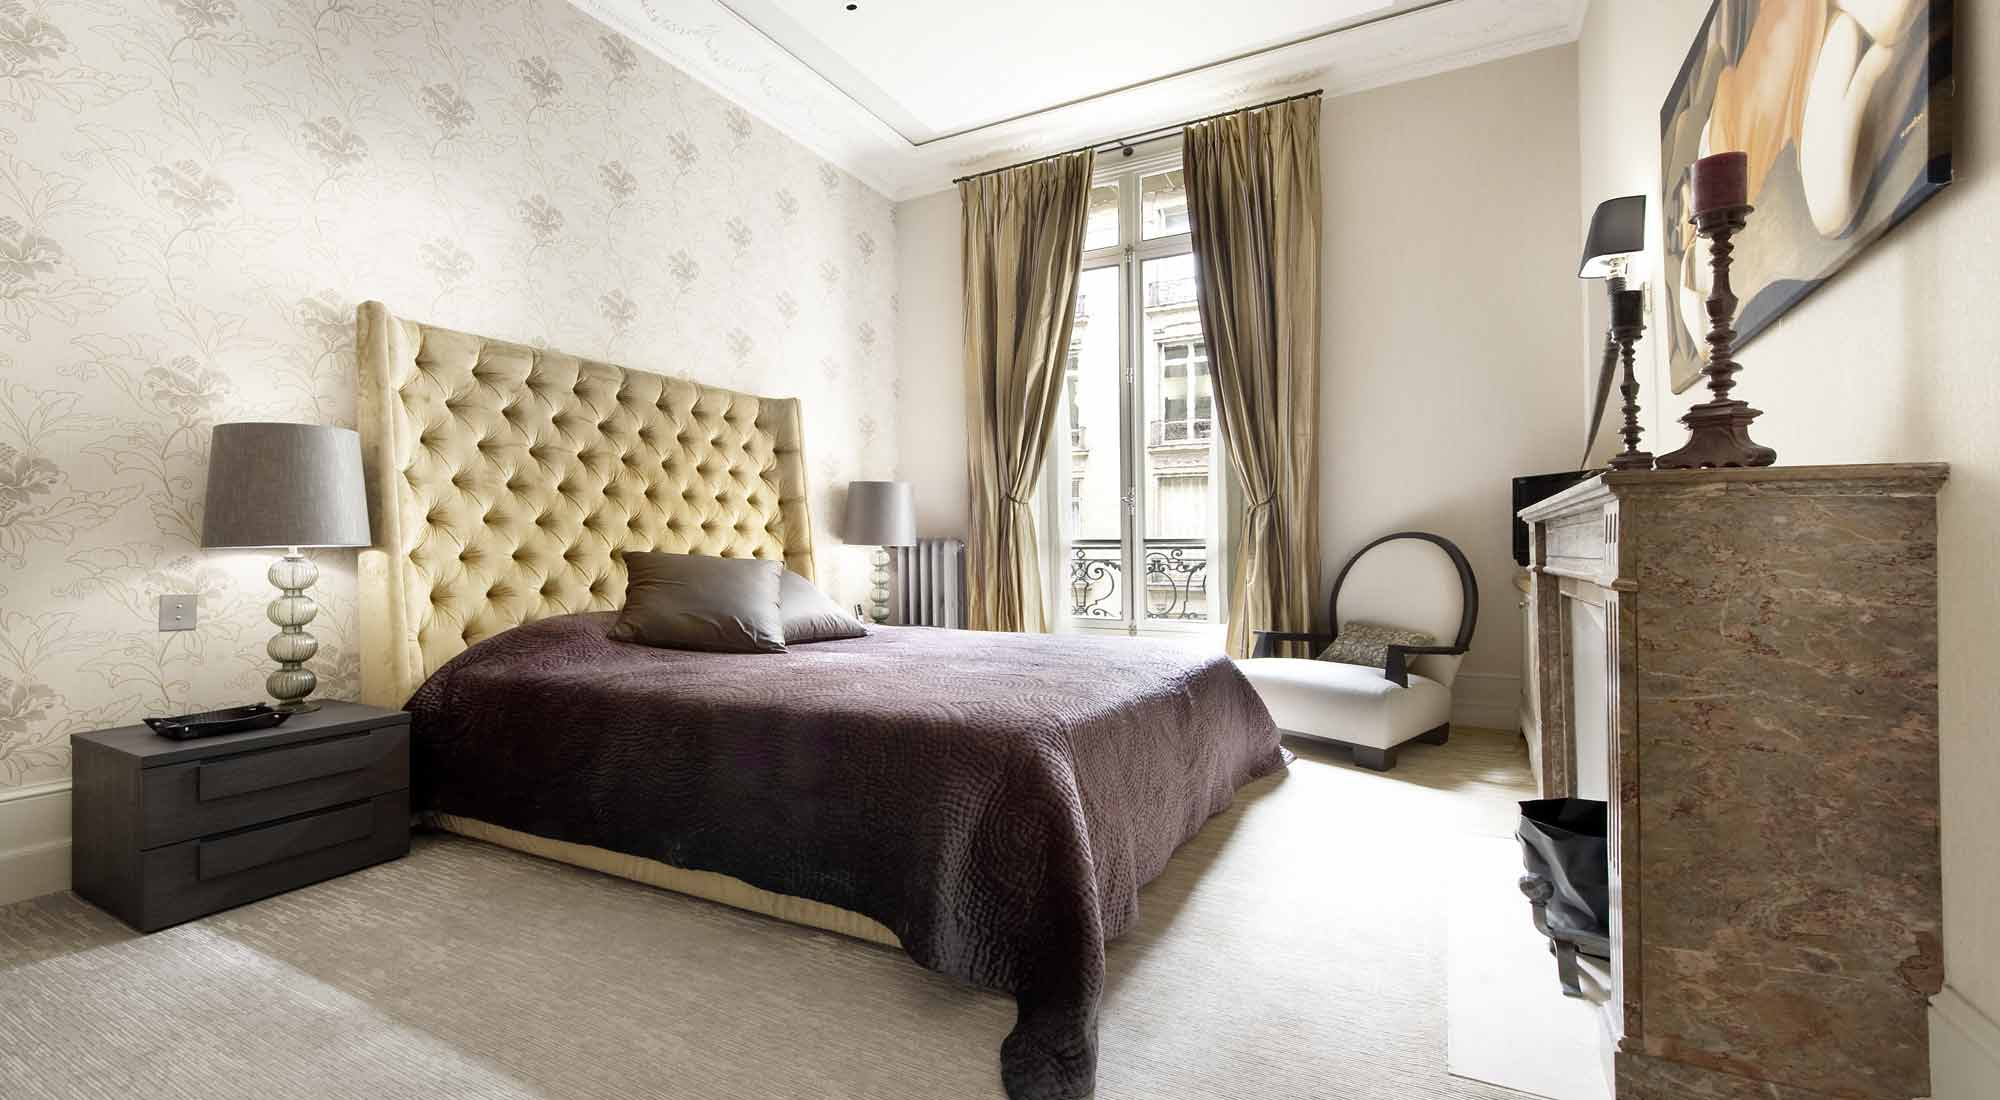 Paris Luxury Apartment for Rent, France